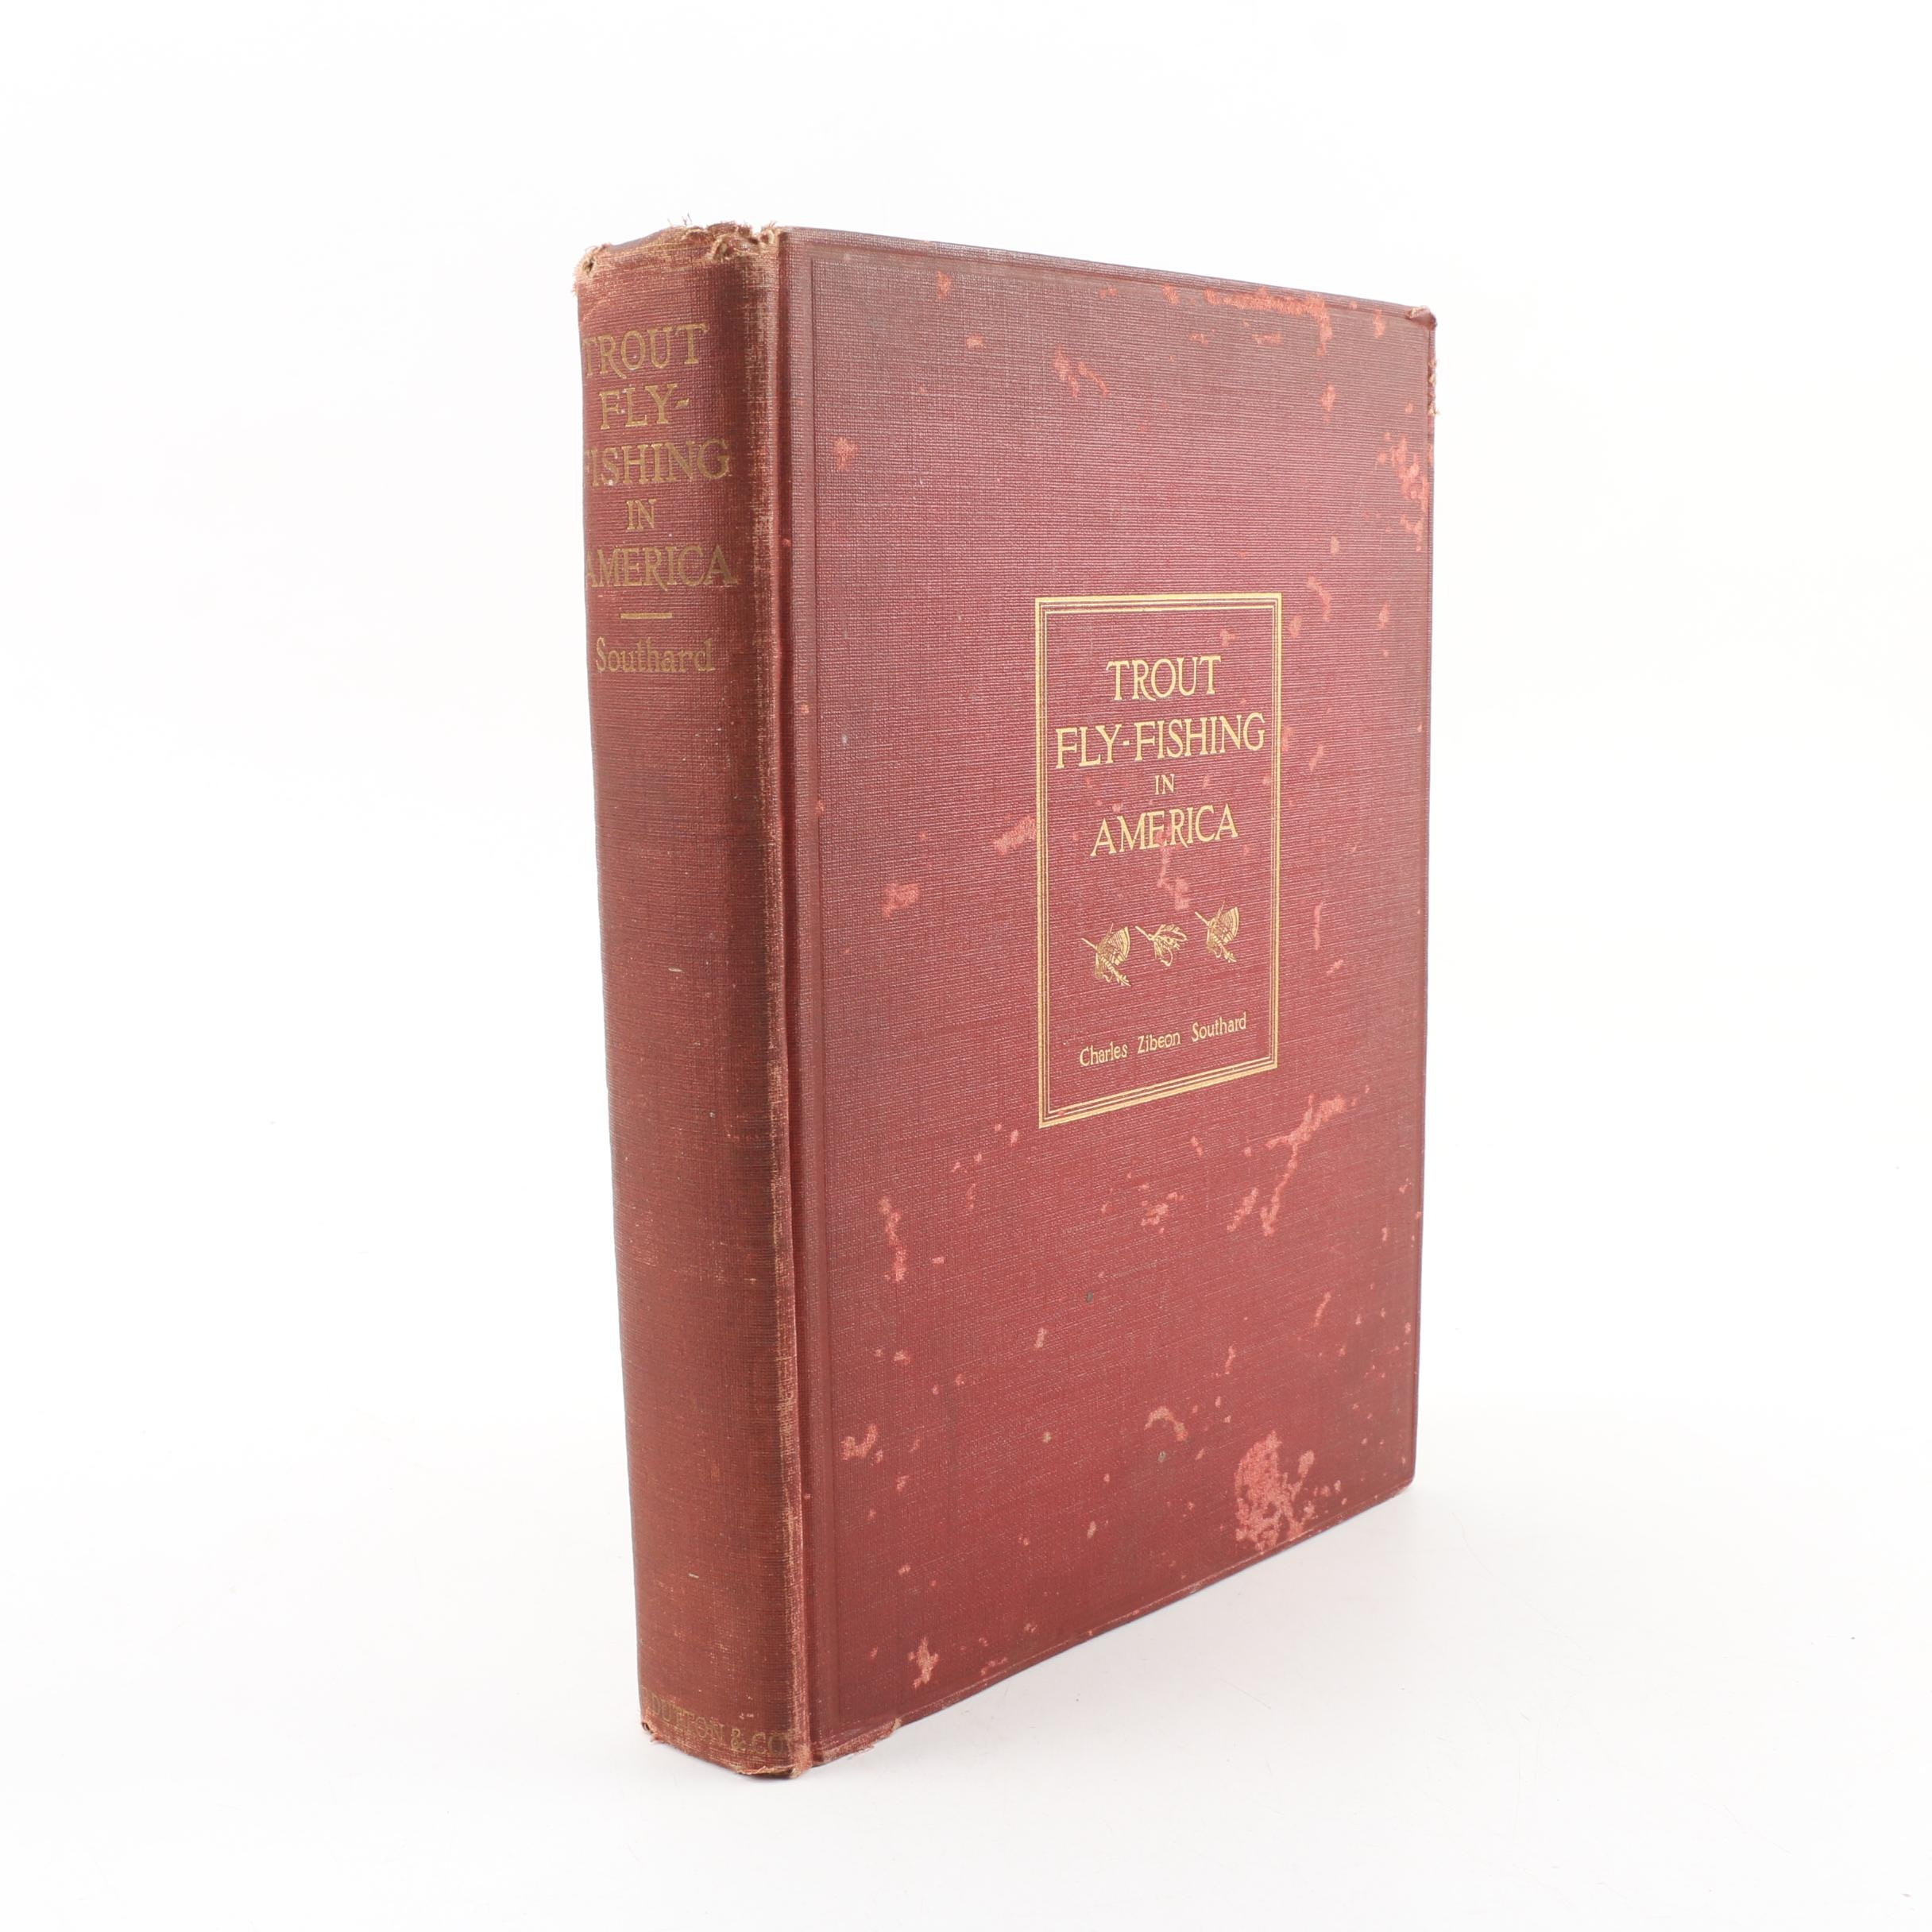 """1914 First Trade Edition """"Trout Fly-fishing in America"""" by Charles Z. Southard"""